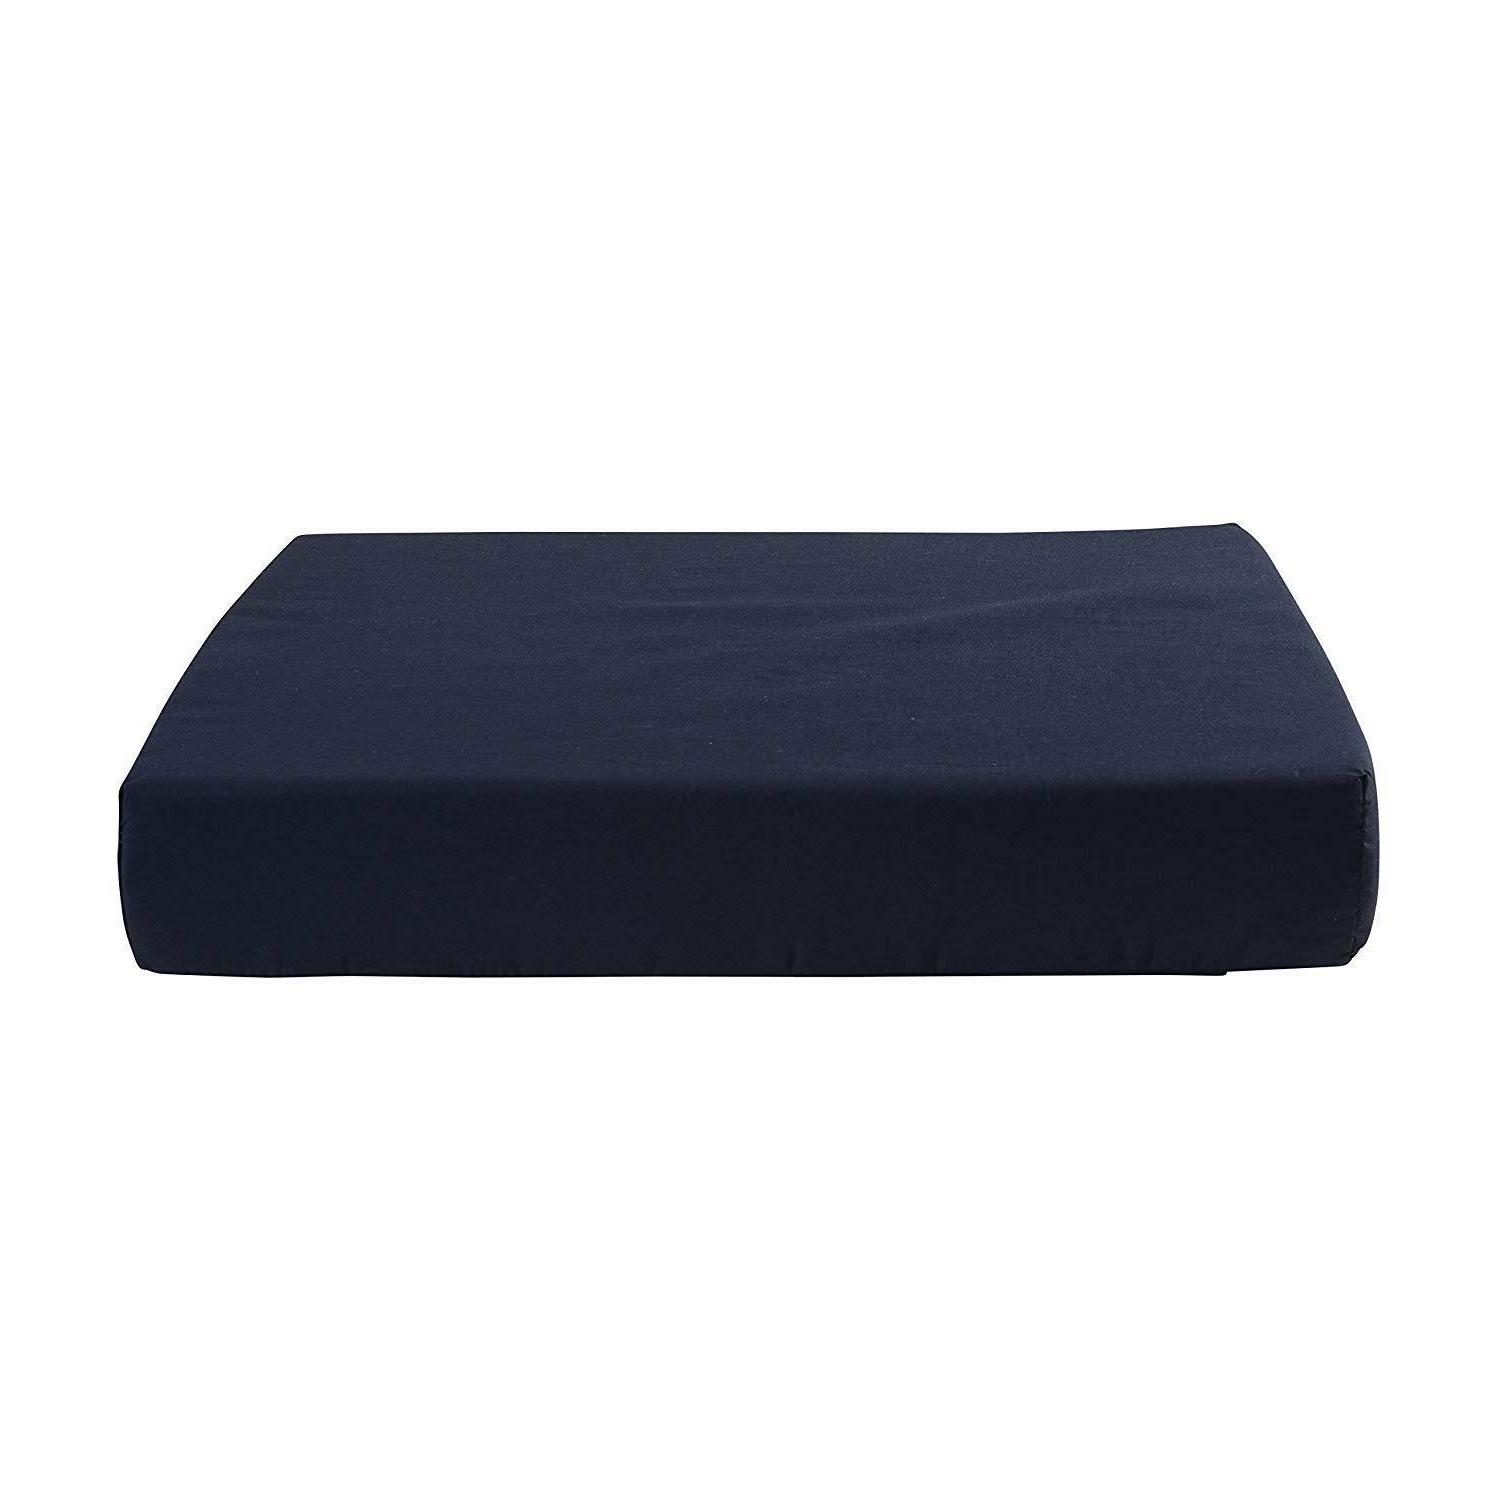 Duro-Med Foam For Or Chair With Navy